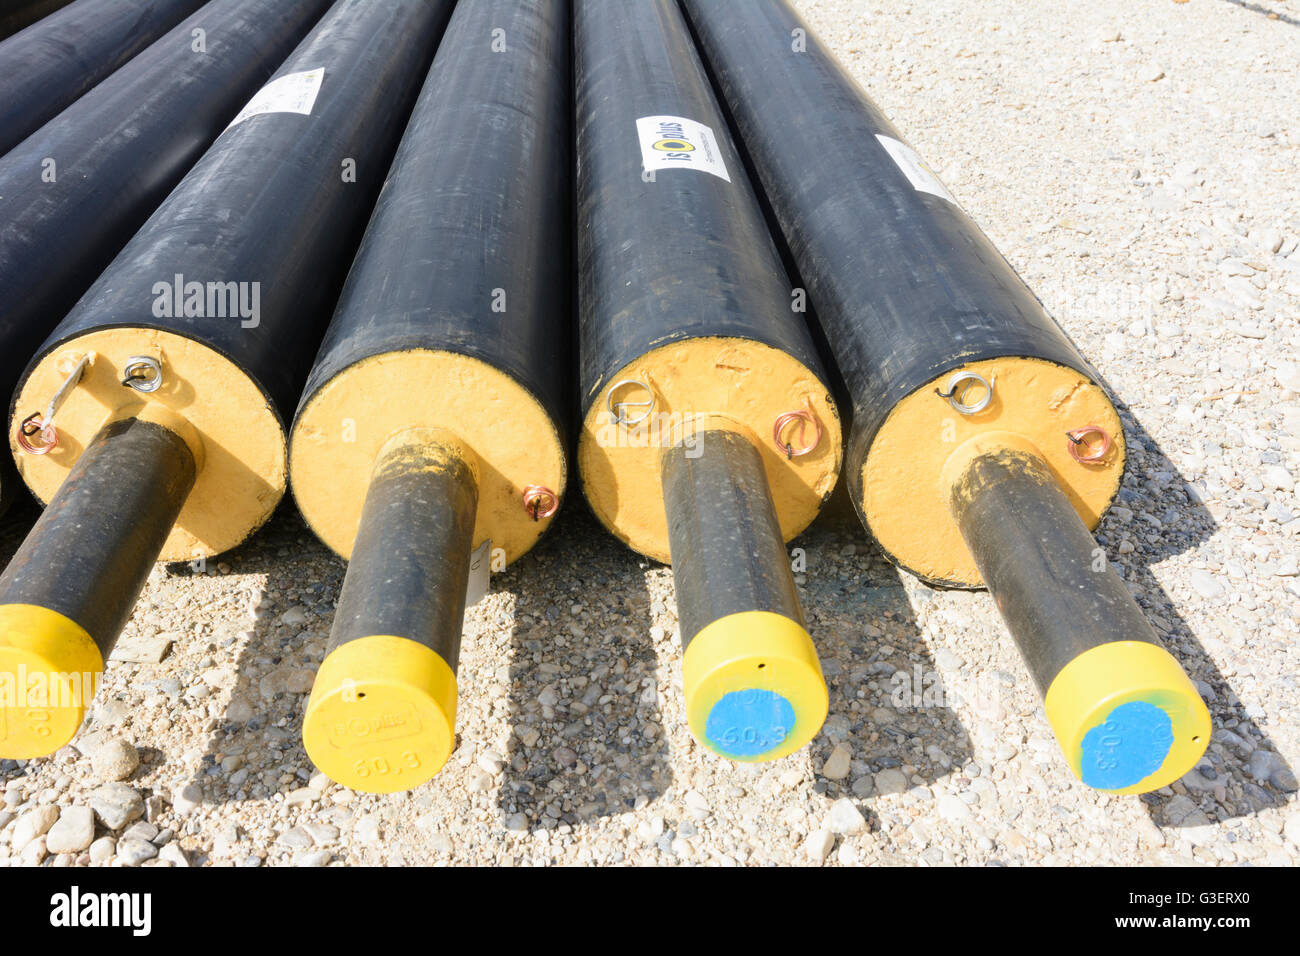 District heating pipes of plastic jacket compound pipe Austria Wien 10. Wien Vienna & District heating pipes of plastic jacket compound pipe Austria ...